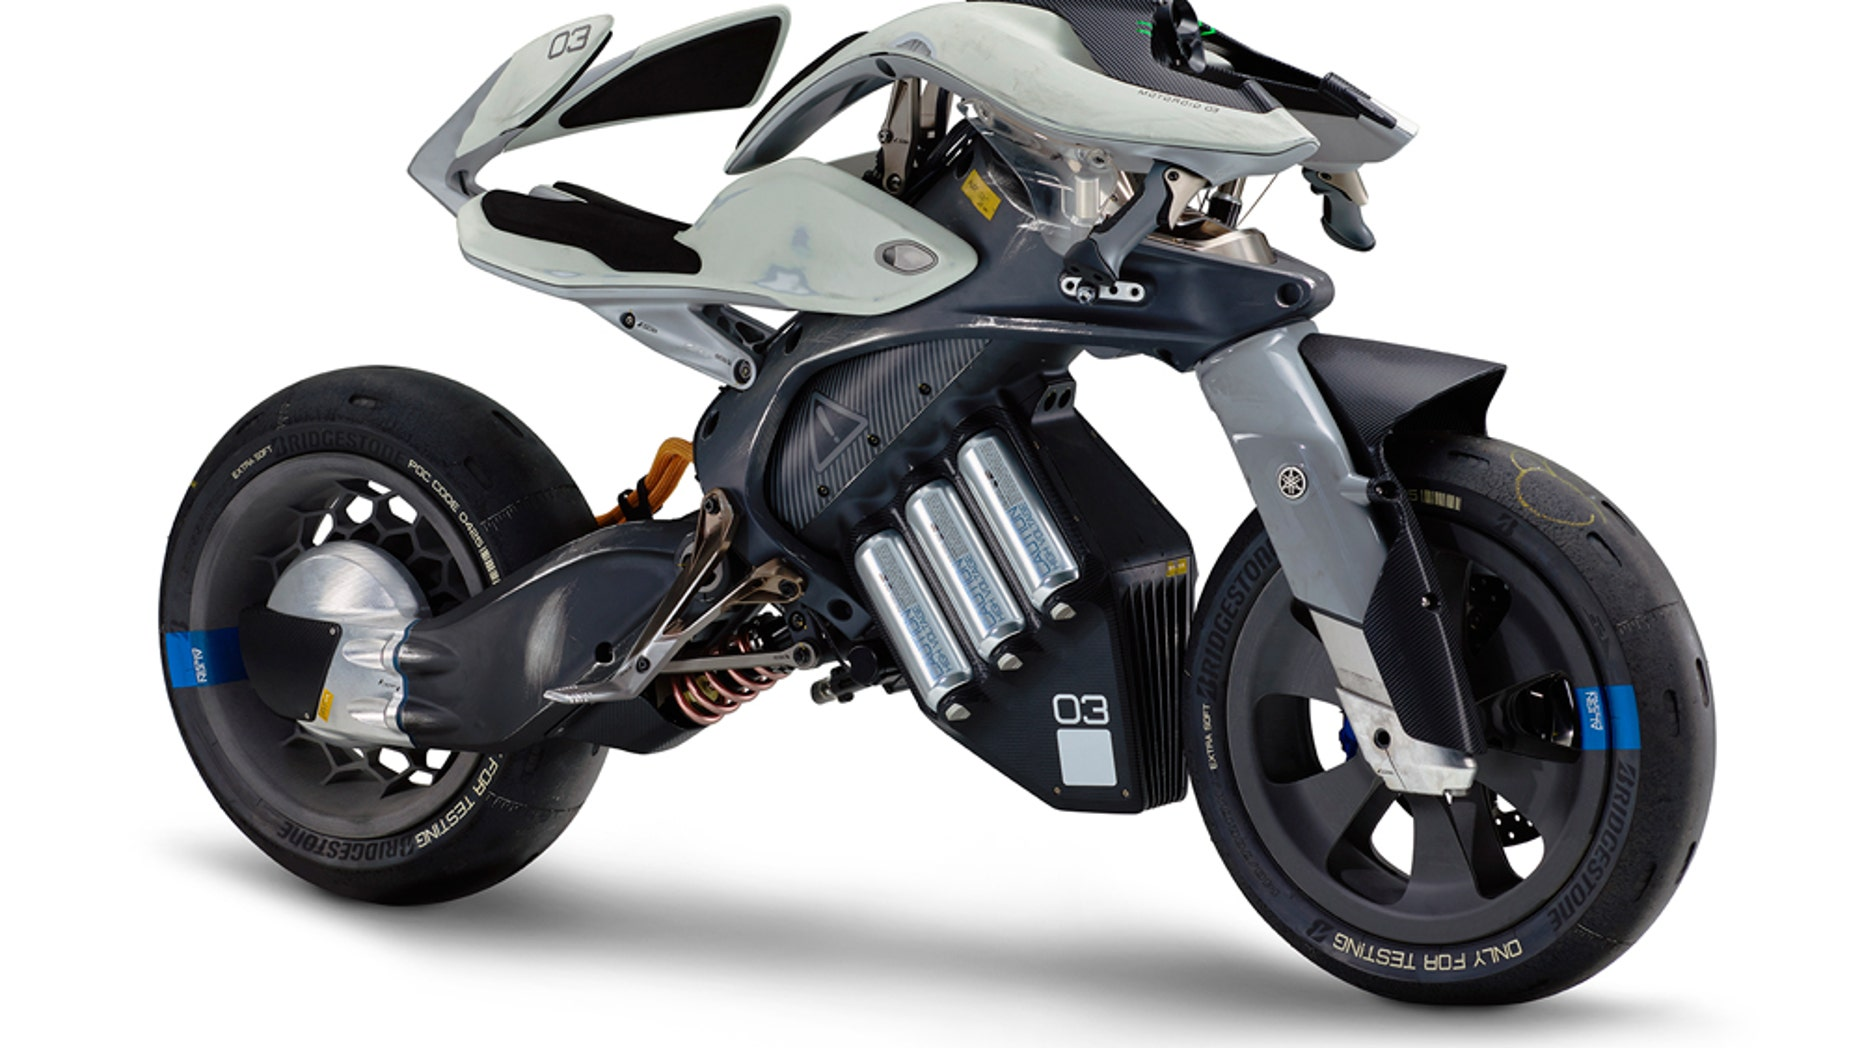 Yamaha Electric Motorcycle >> Yamaha Reveals Wild Electric Motorcycle Concept Fox News